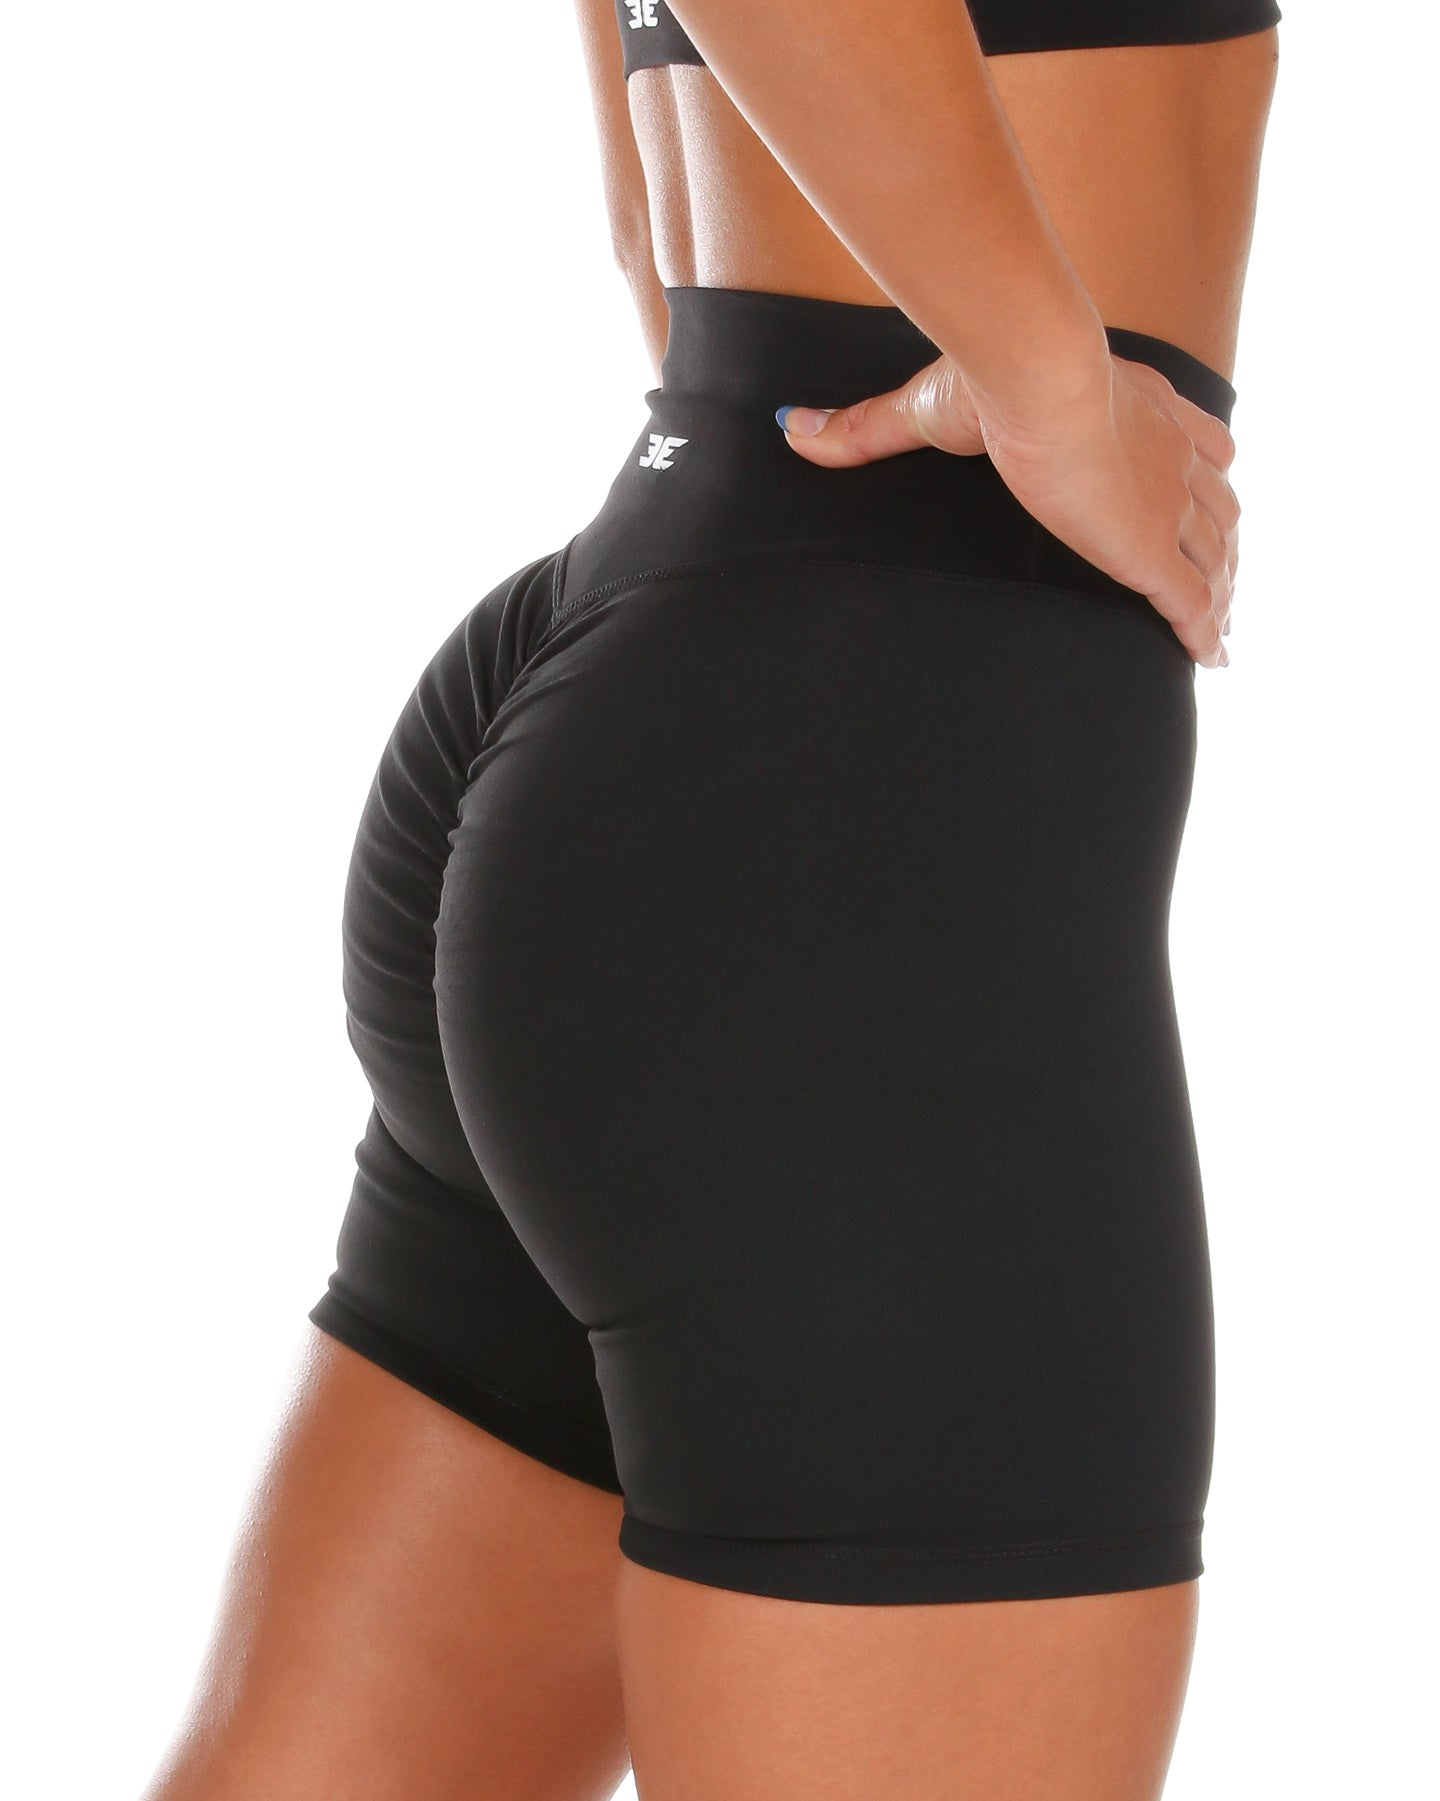 Touch Scrunch Shorts - Black